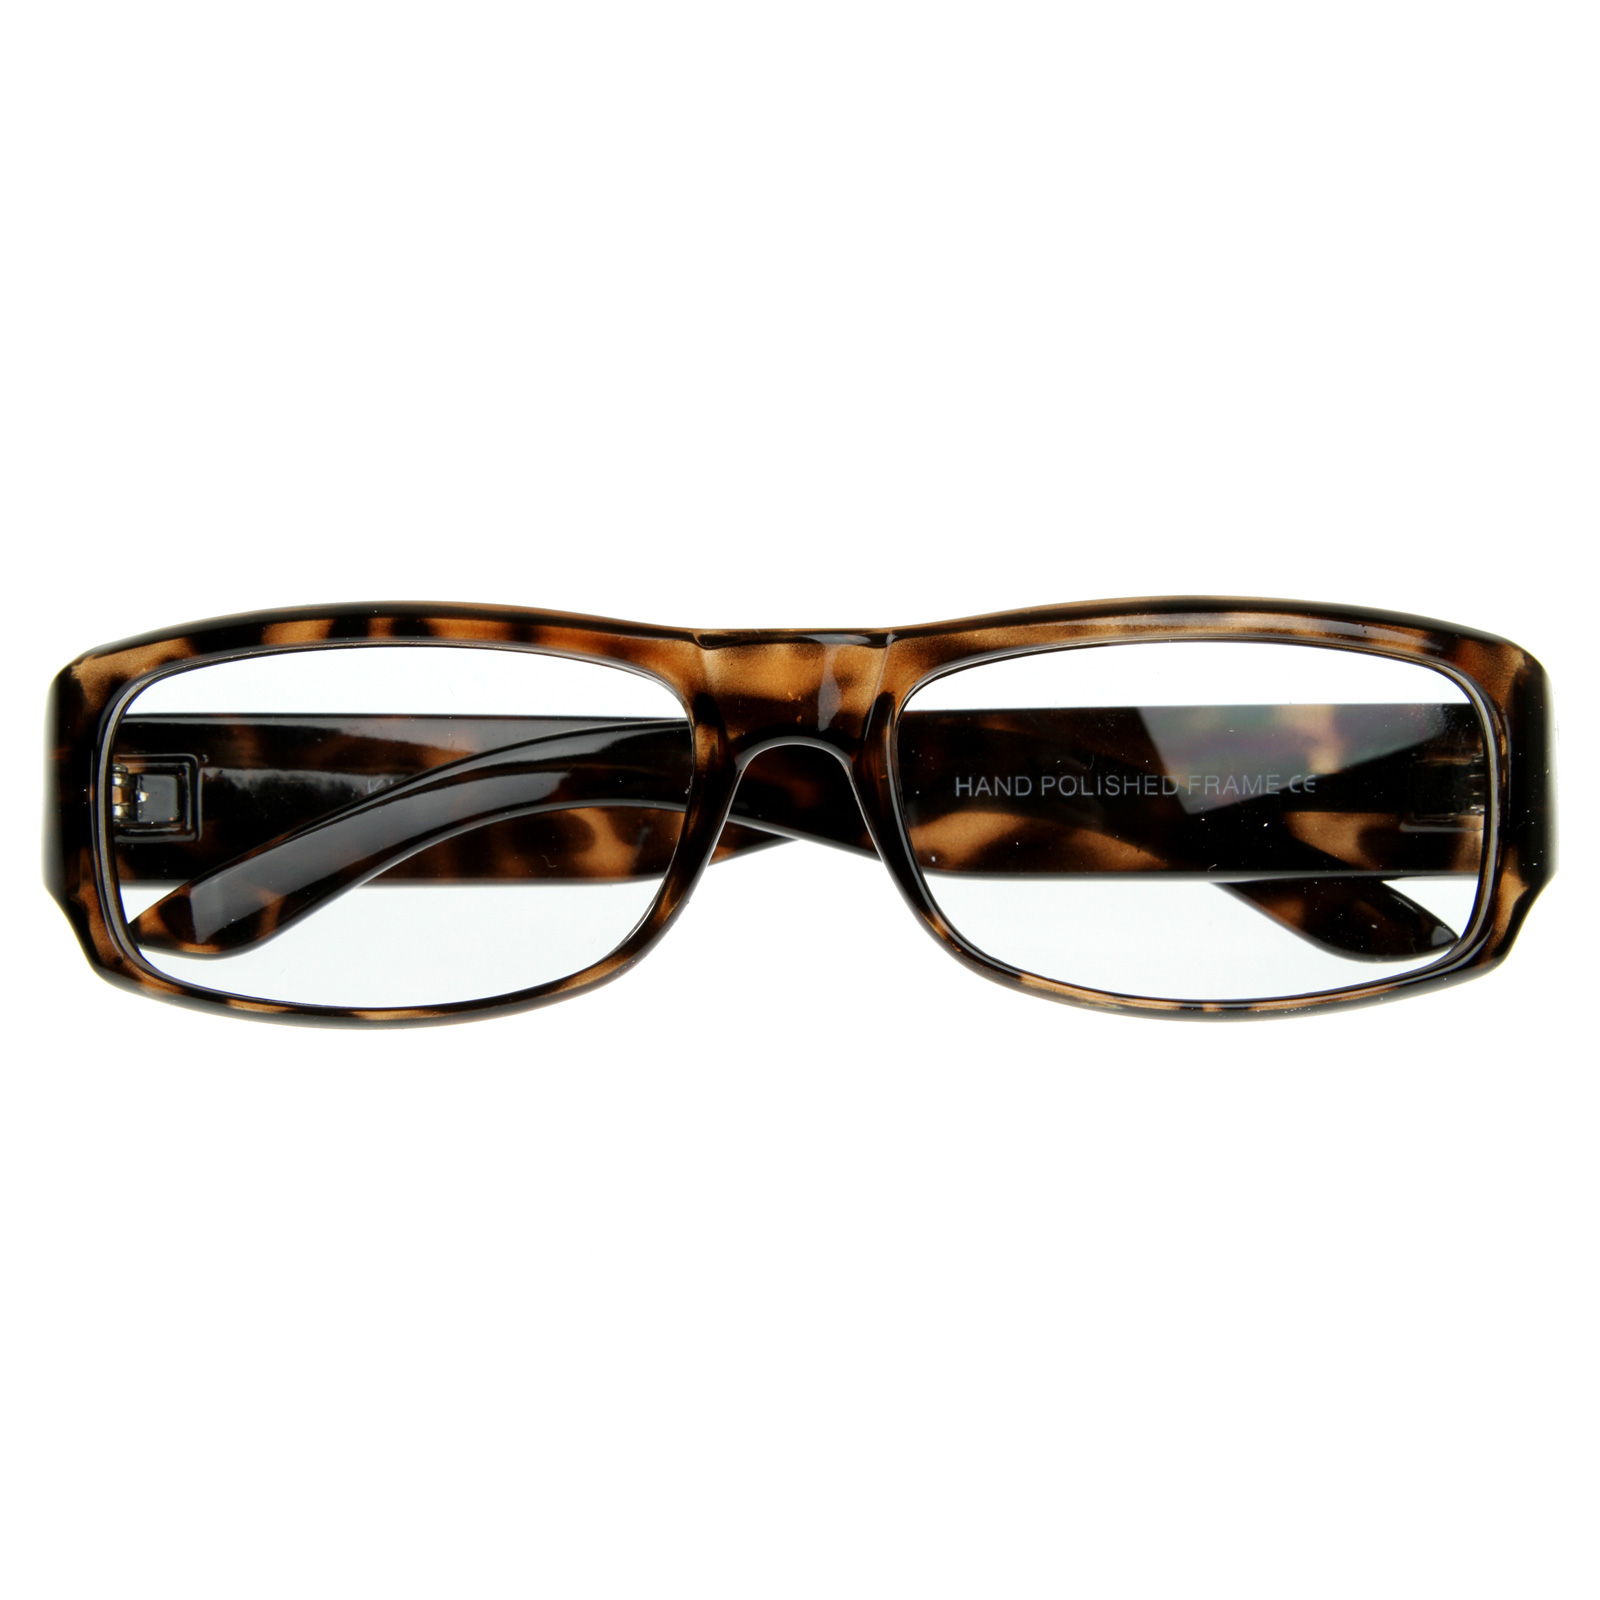 Large Rectangular Glasses Frame : Large Euro Designer Inspired Rectangular Bold RX Frame ...